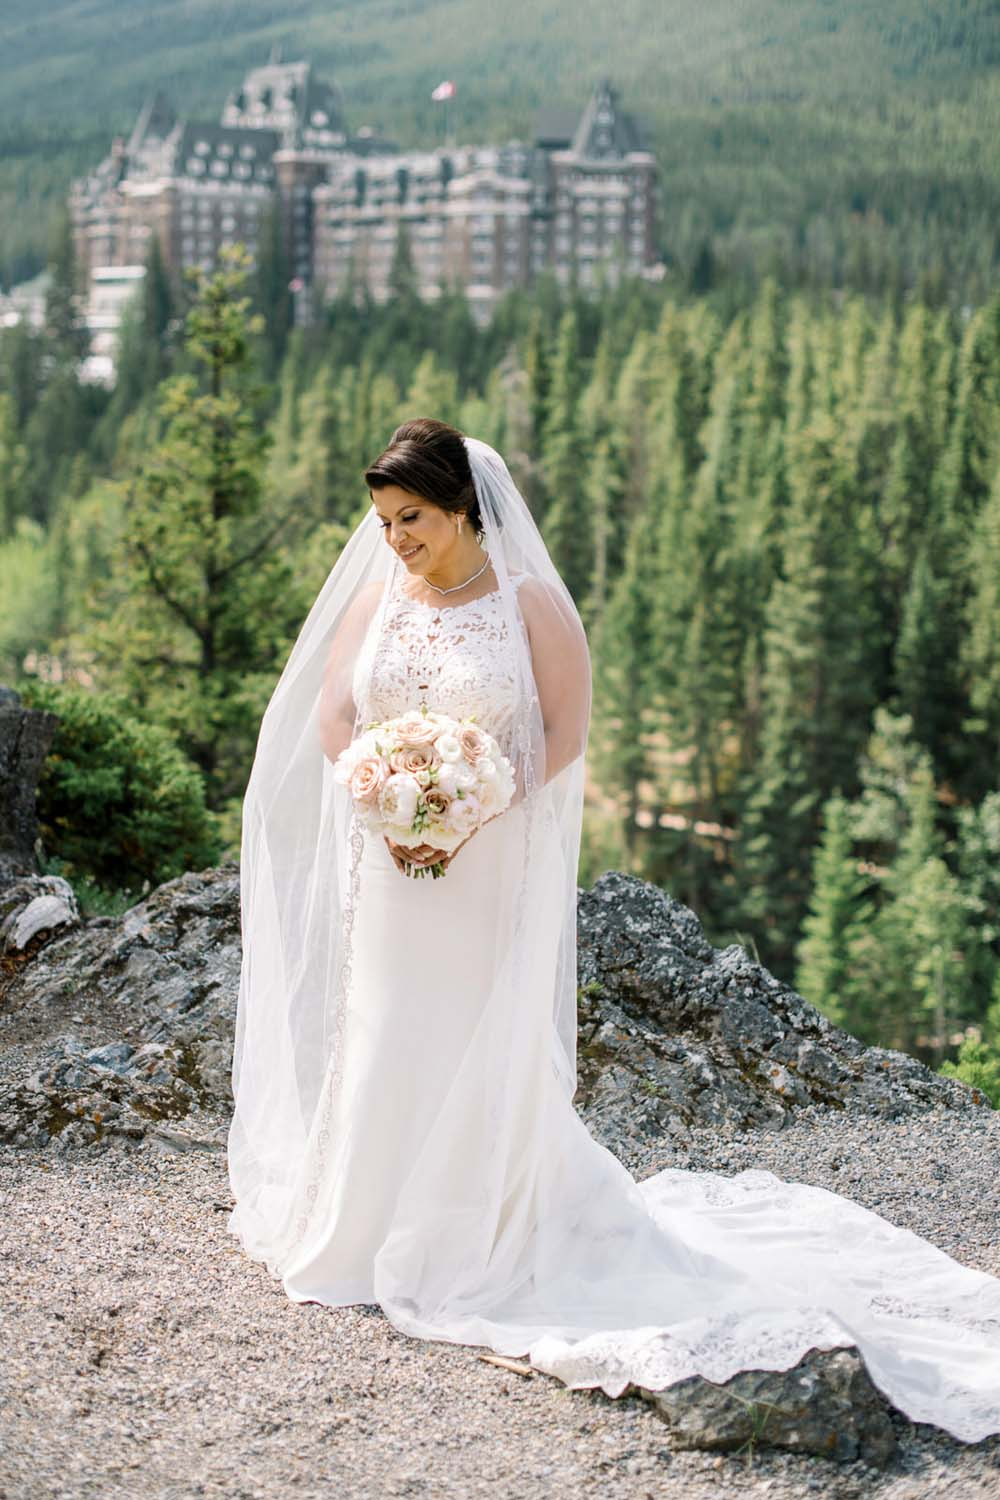 A Regal Fairytale Wedding in Banff, Alberta - Bride